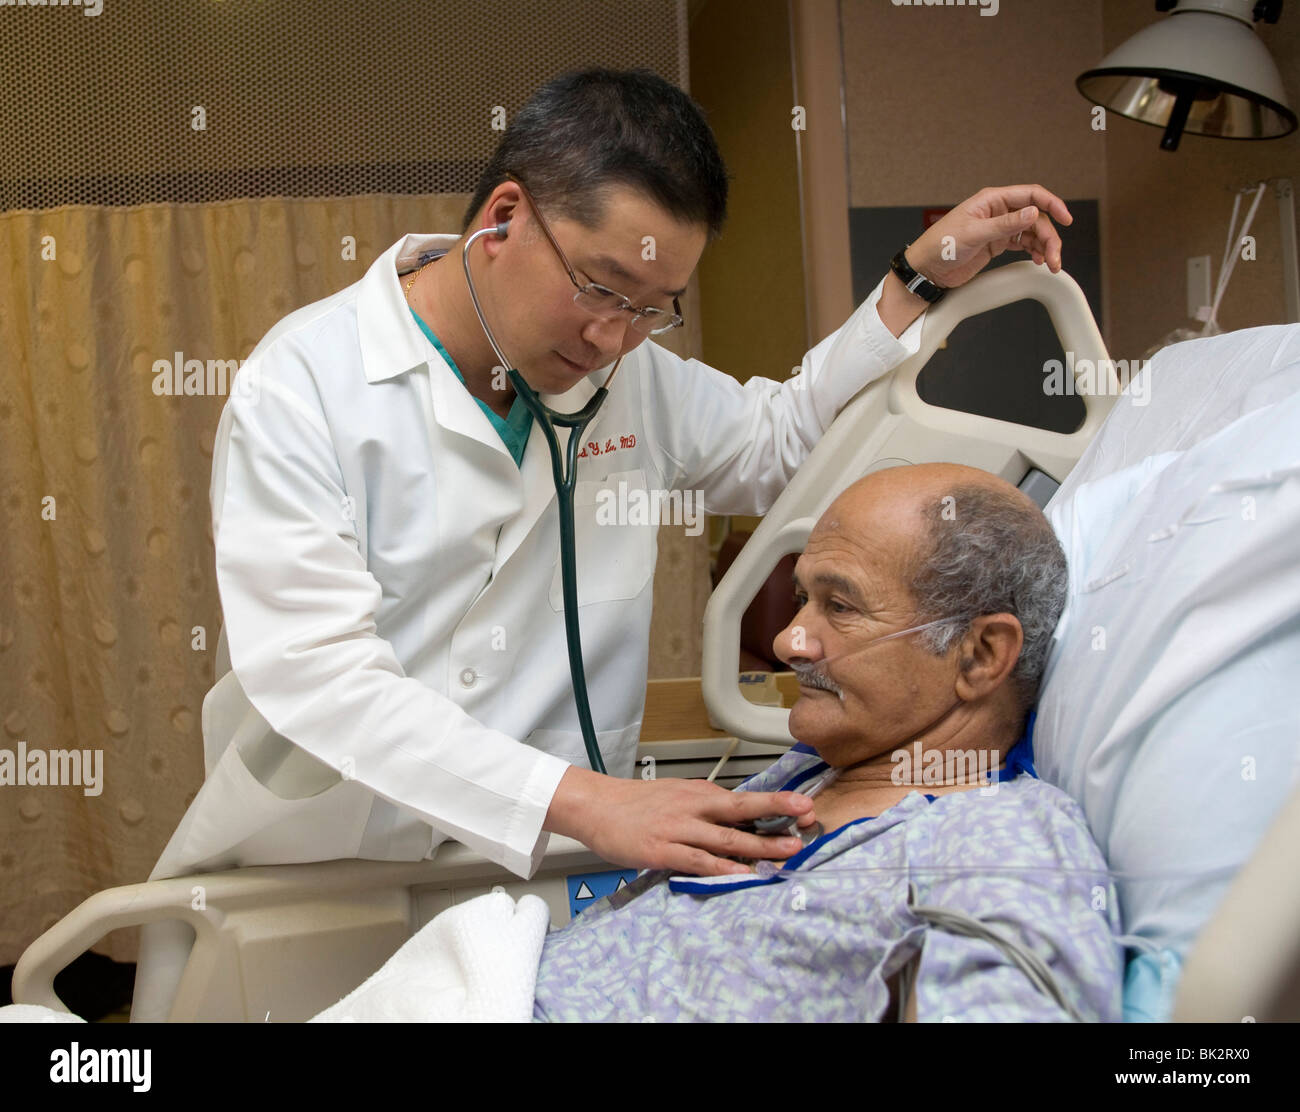 Surgeon examines heart patient as he recovers from surgery at a New York City hospital. - Stock Image